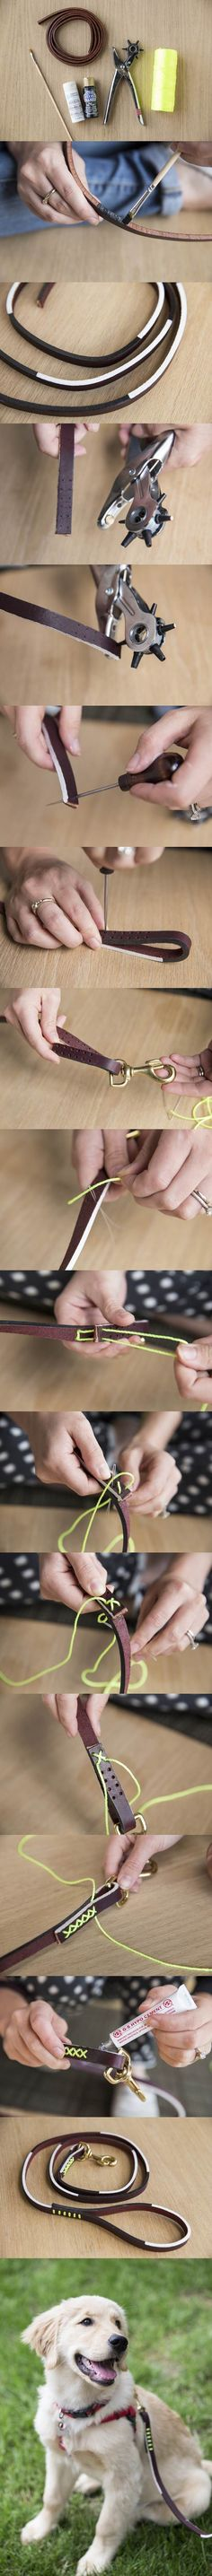 DIY Graphic Leather Dog Leash 2 - Tap the pin for the most adorable pawtastic fur baby apparel! You'll love the dog clothes and cat clothes! <3